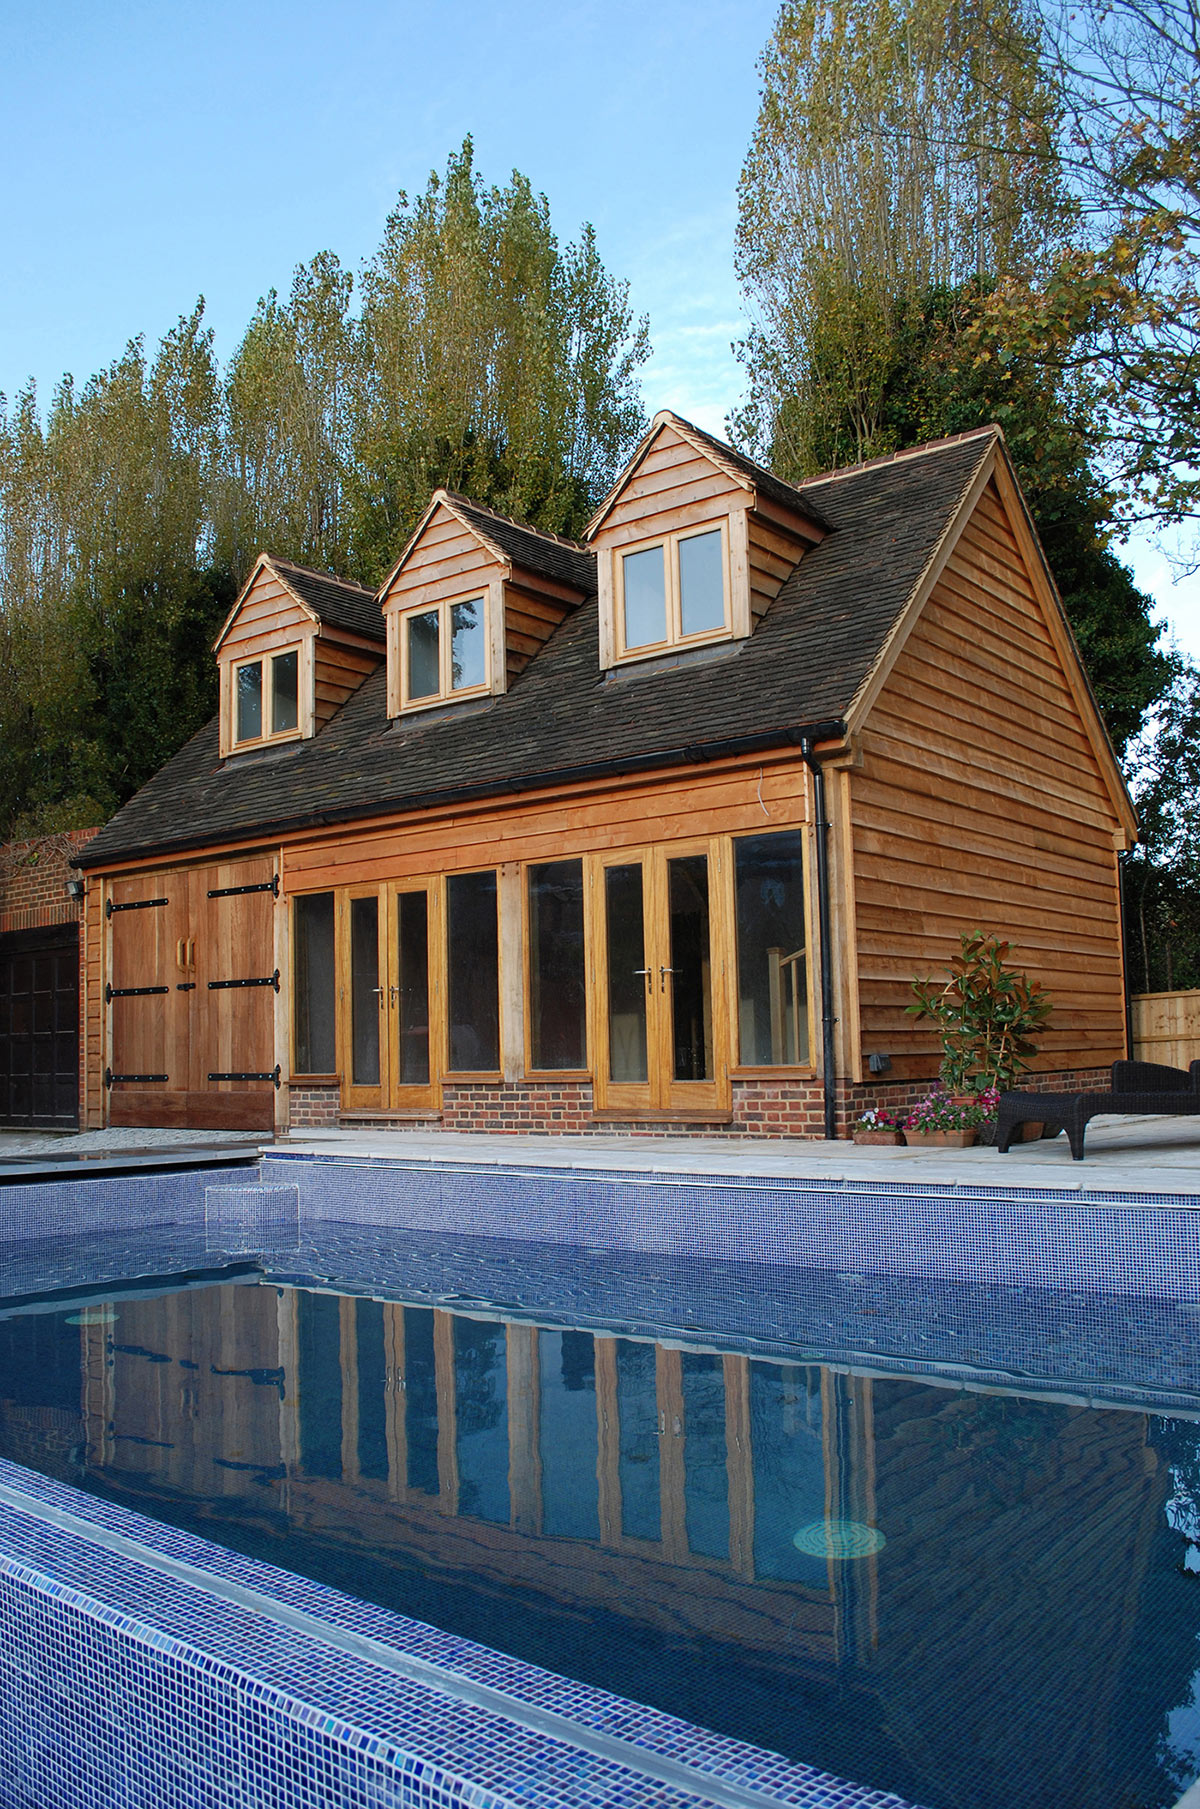 This building is utilized as a changing room facility however it is possible to have an oak frame enclosing your swimming pool.